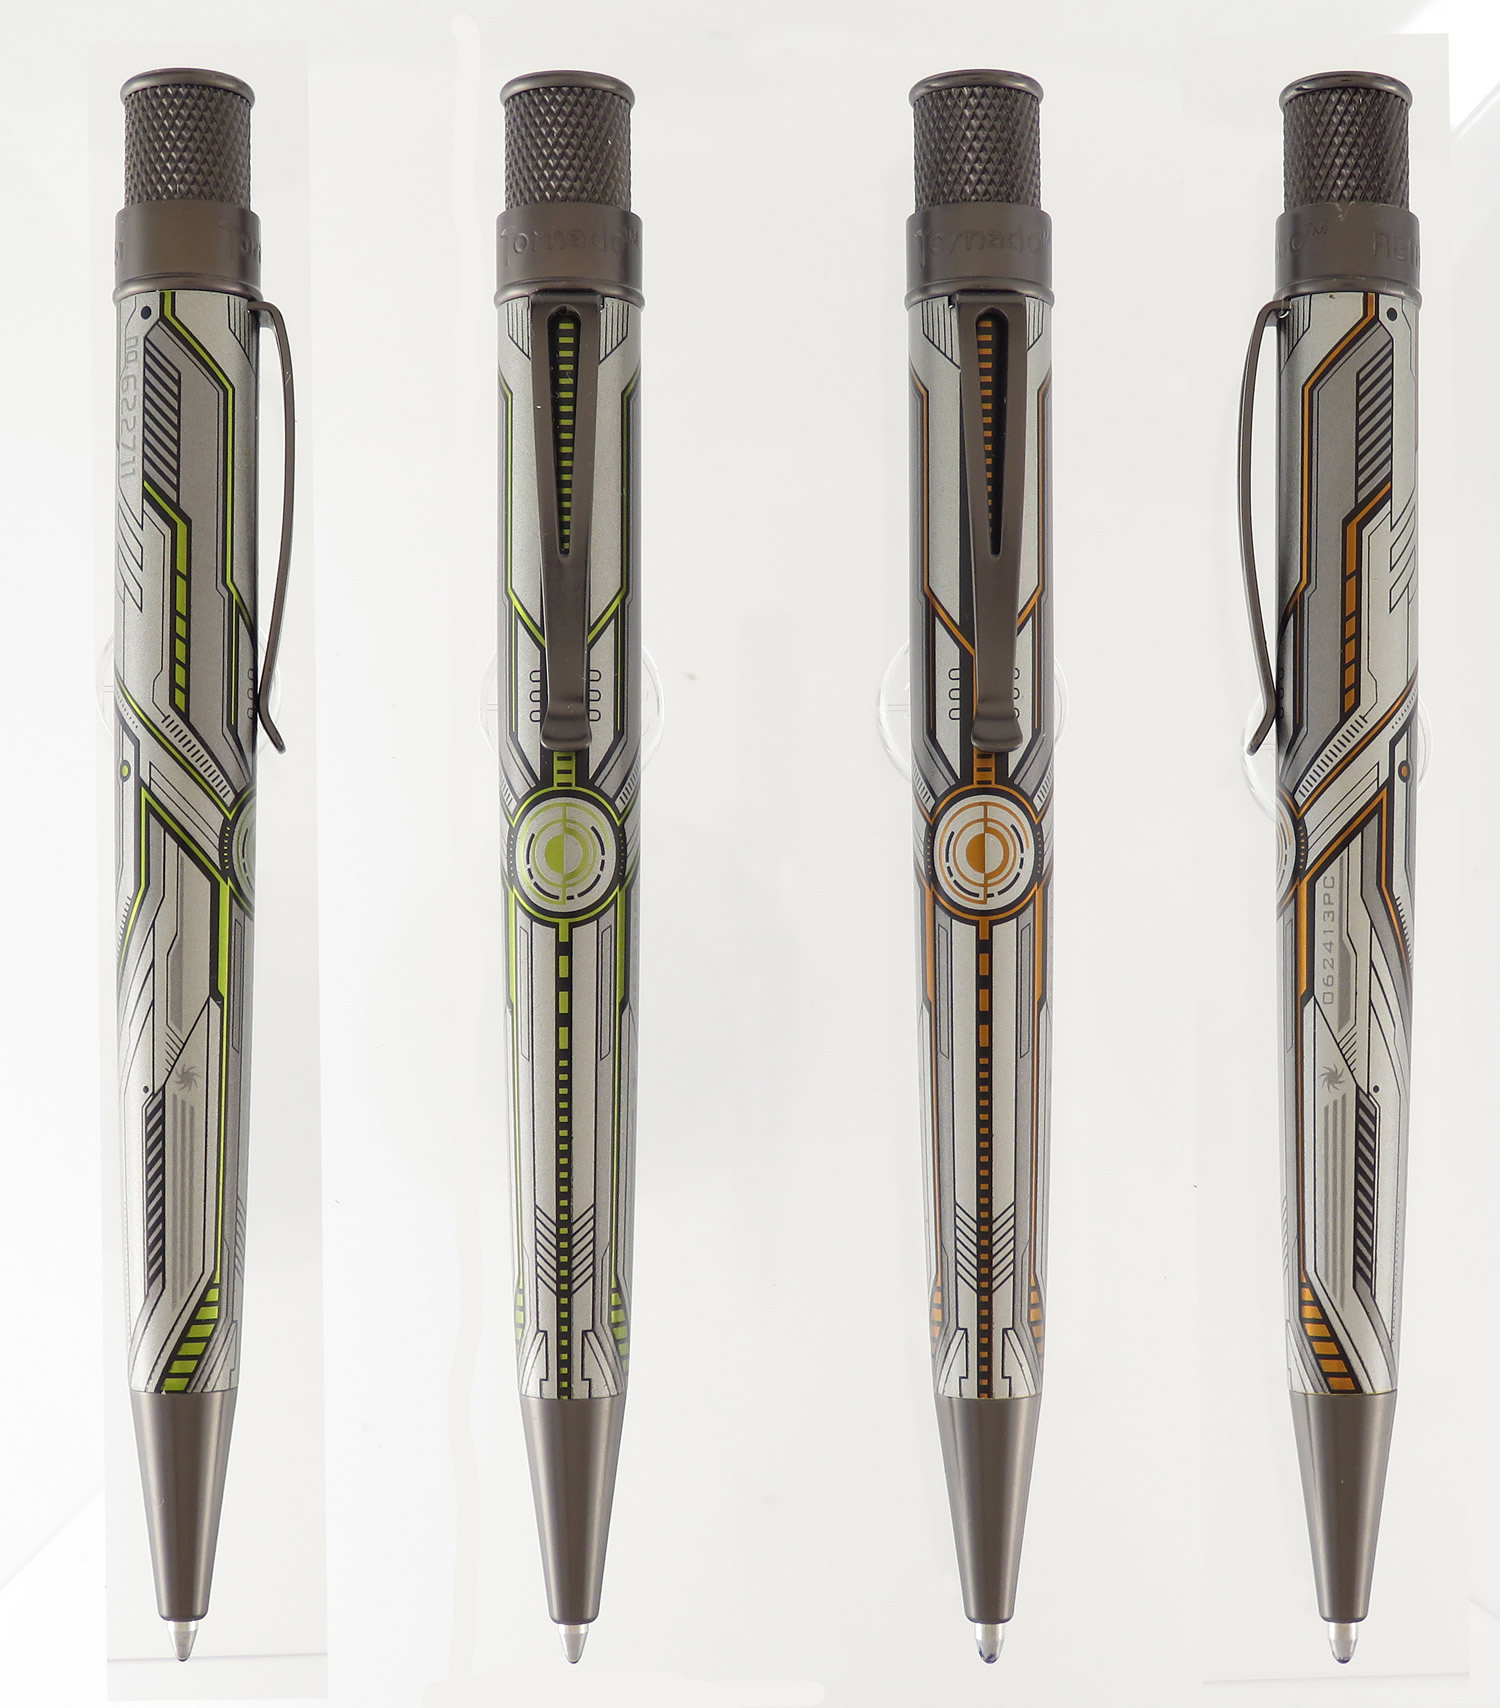 Retro 51 Argo pen